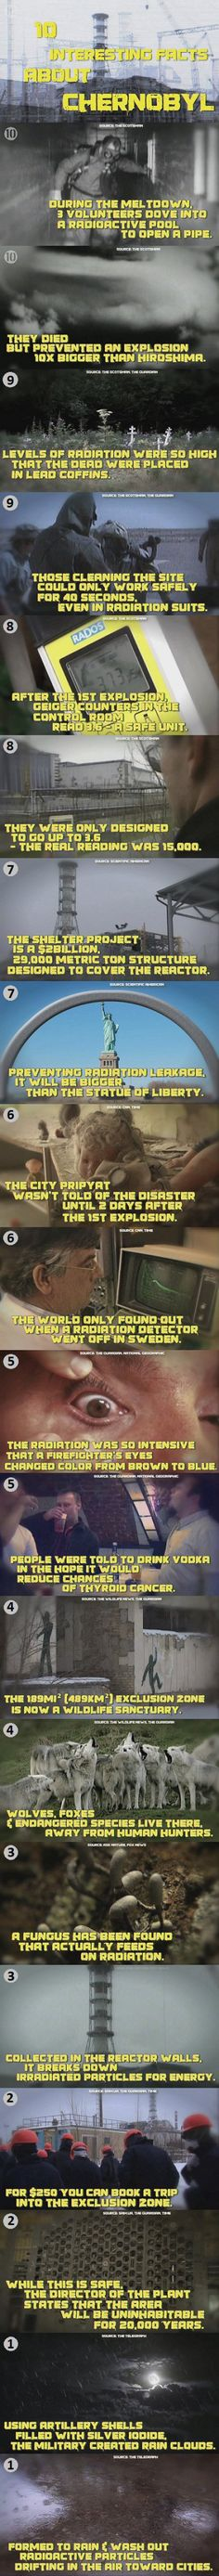 Chernobyl Facts - Fact Picture | Webfail - Fail Pictures and Fail Videos